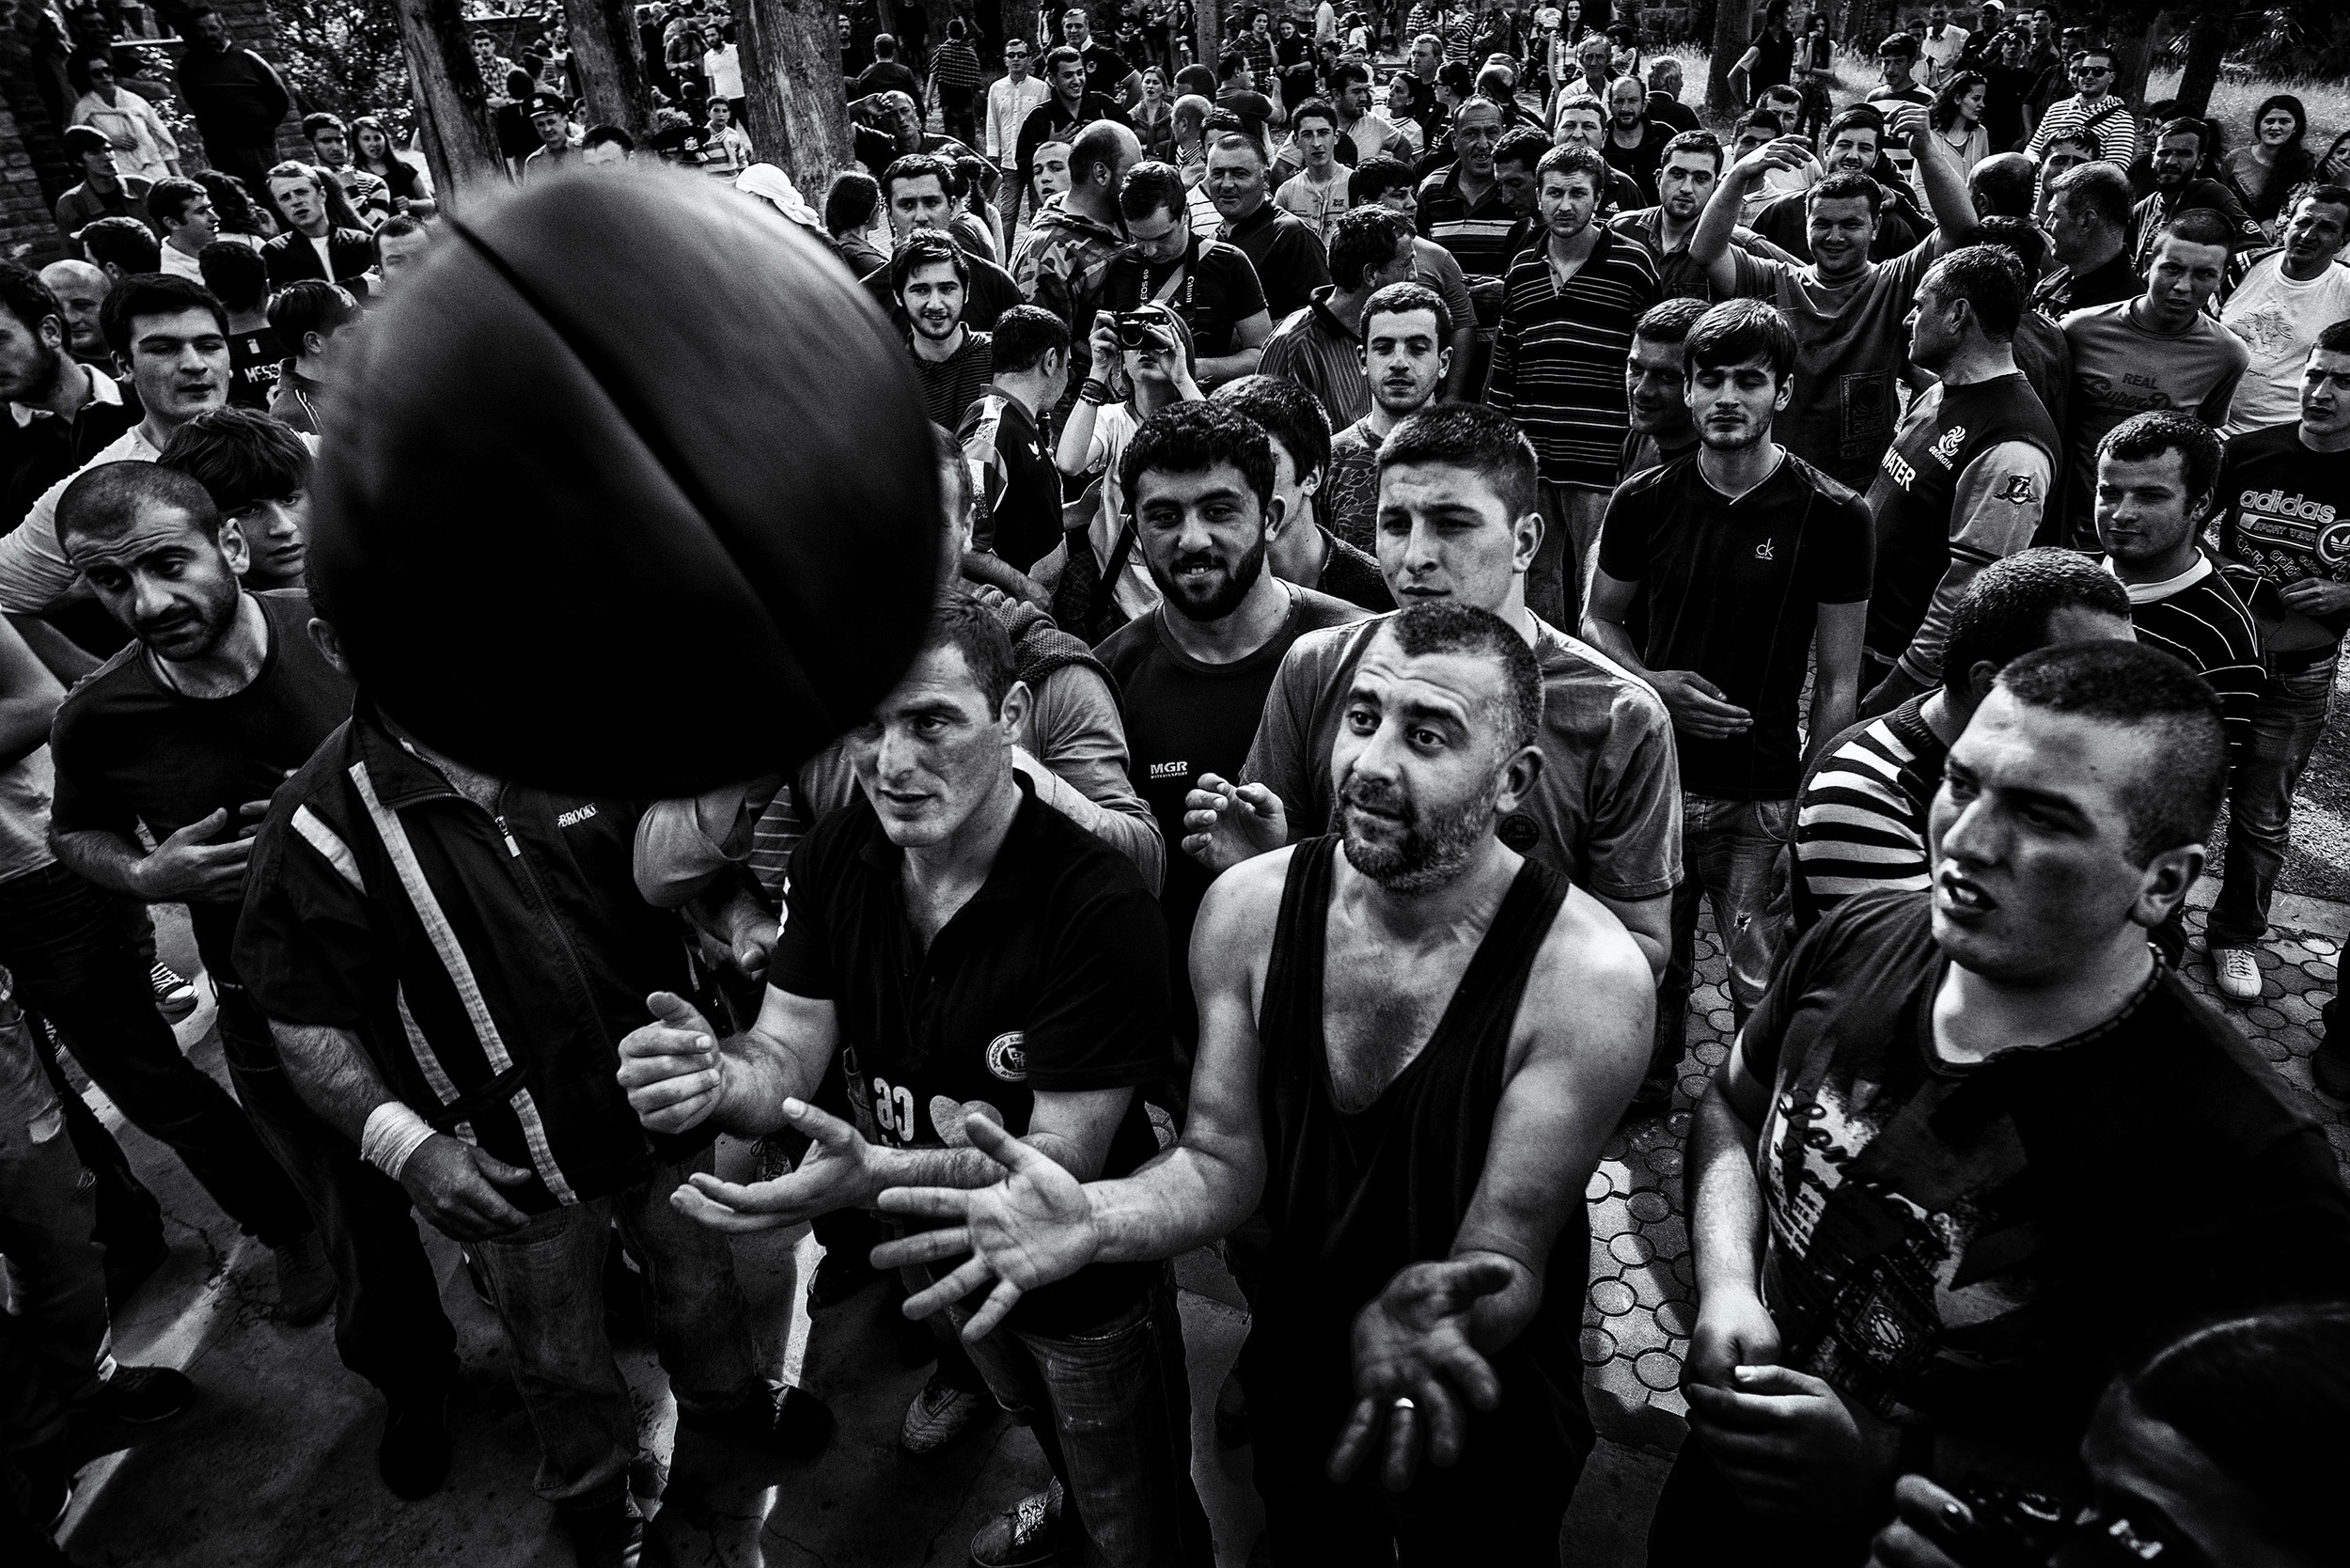 People are looking forward to the game the whole year. As the ball is made only few hours before, players doesn't have the chance to practice but few minutes before game starts. Happiness and fear can being seen in players faces. Shukhuti, Georgia, April 2014.